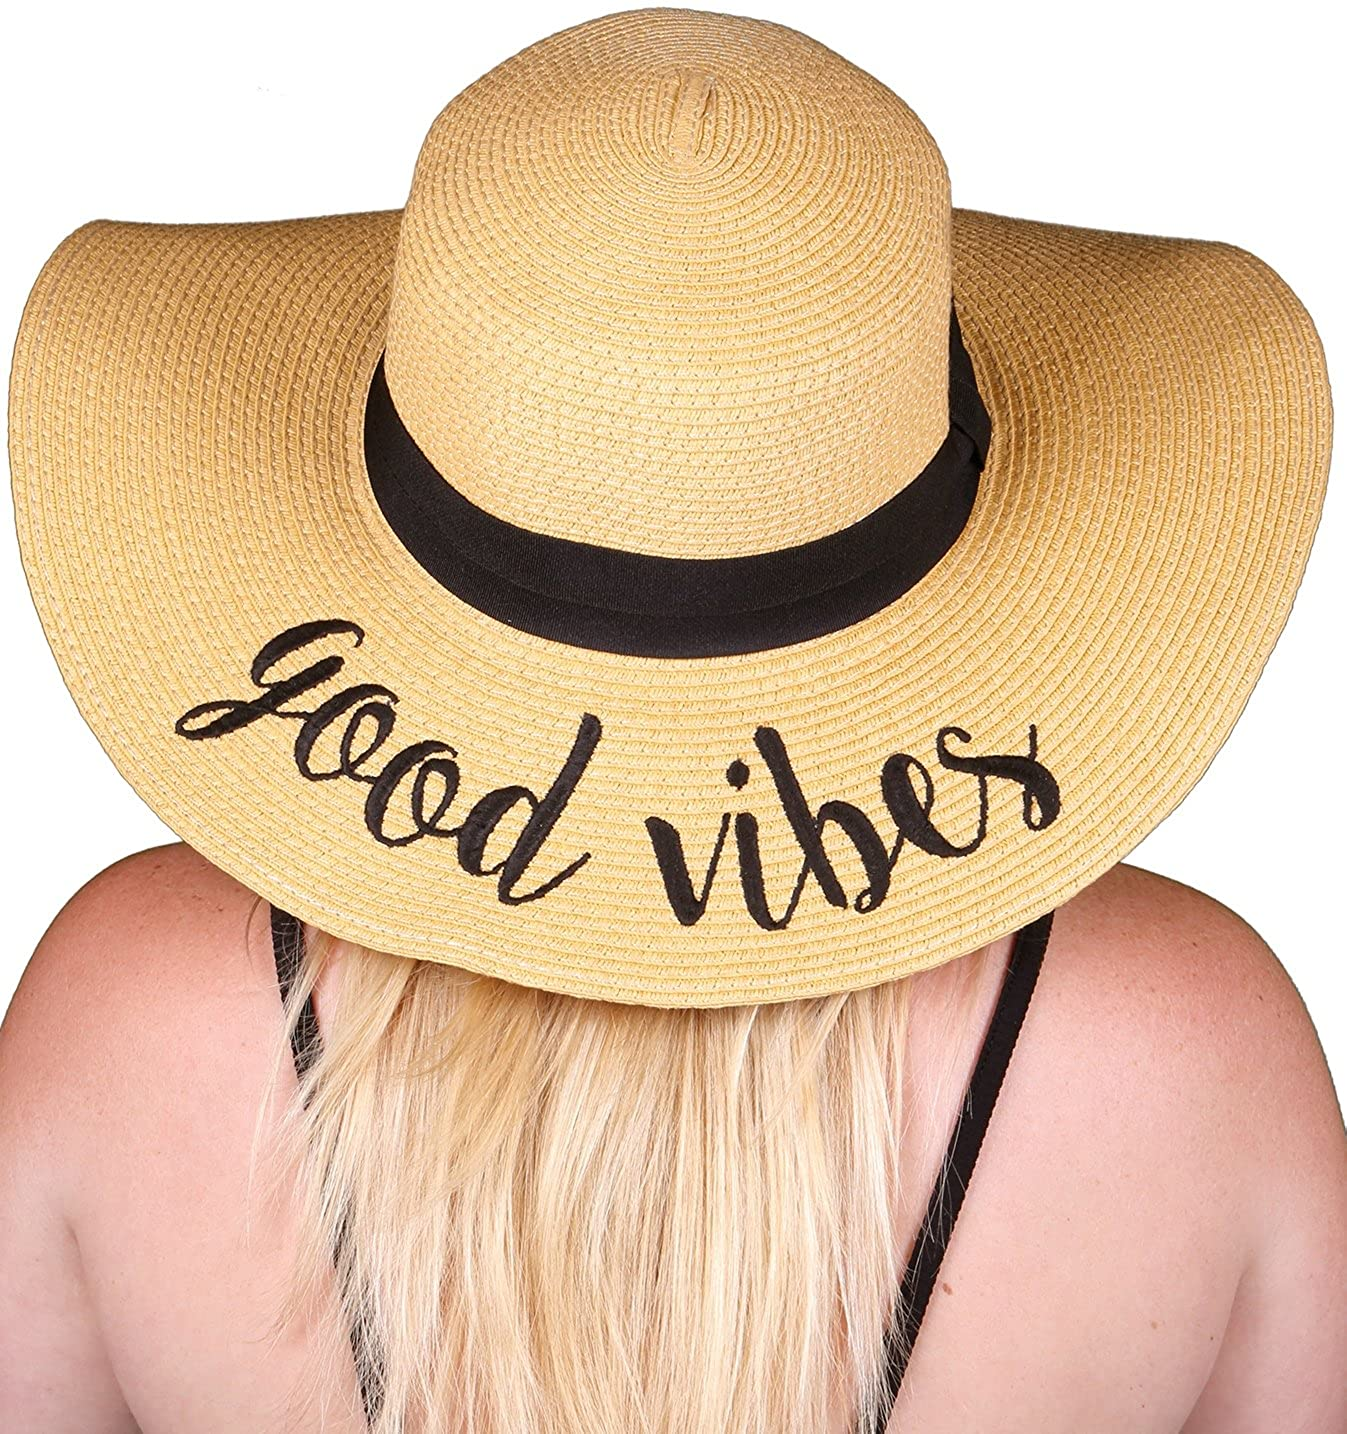 Good Vibes Funky Junque Women's Bold Cursive Embroidered Adjustable Beach Floppy Sun Hat